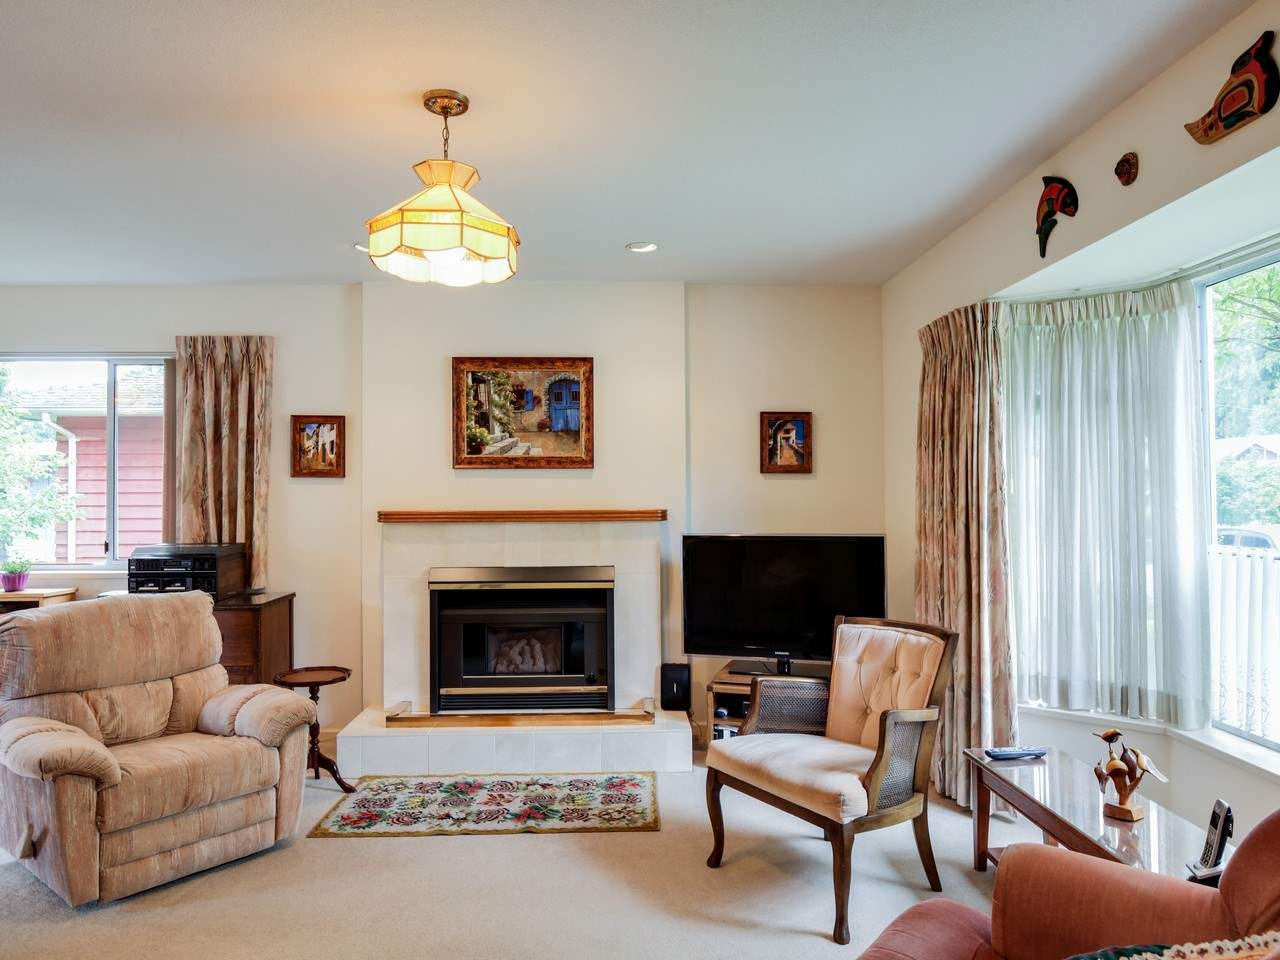 Photo 3: Photos: 4120 LYNN VALLEY ROAD in North Vancouver: Lynn Valley House for sale : MLS®# R2100168